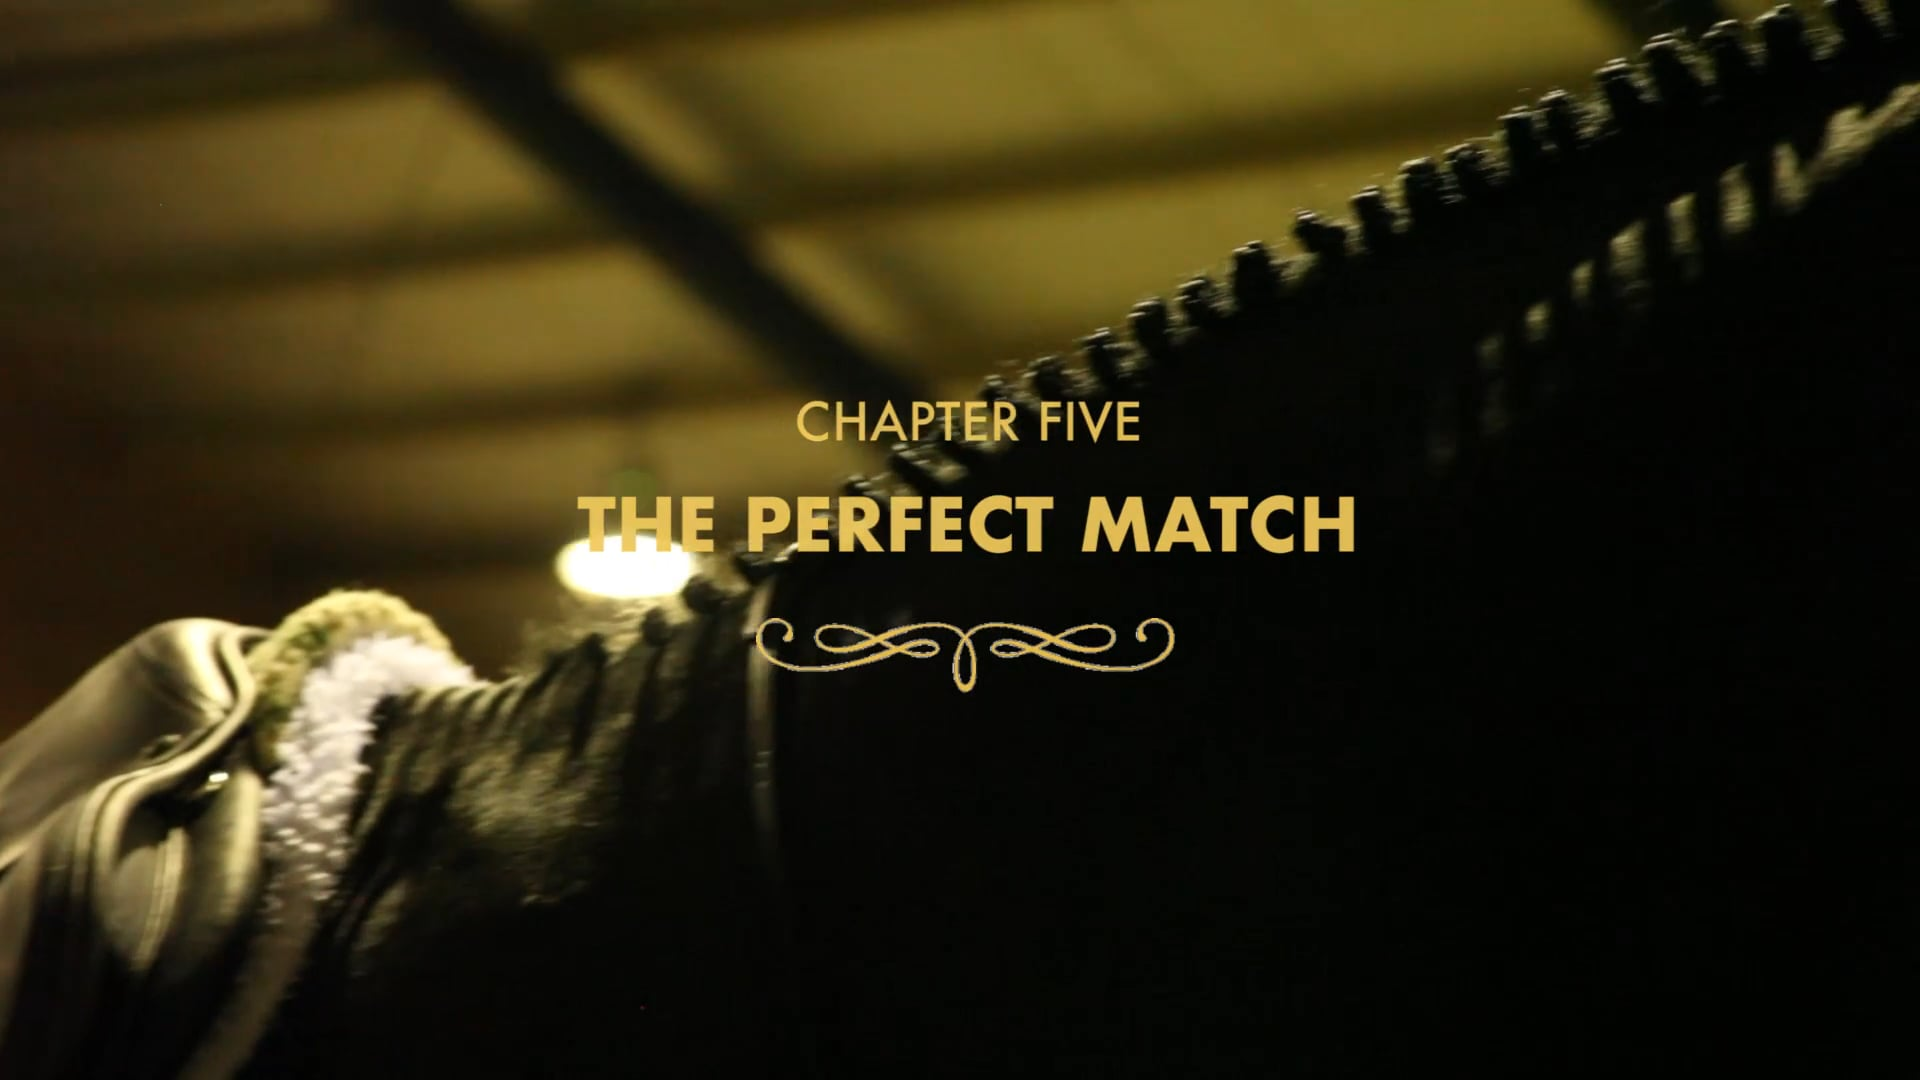 Chapter Five: The Perfect Match